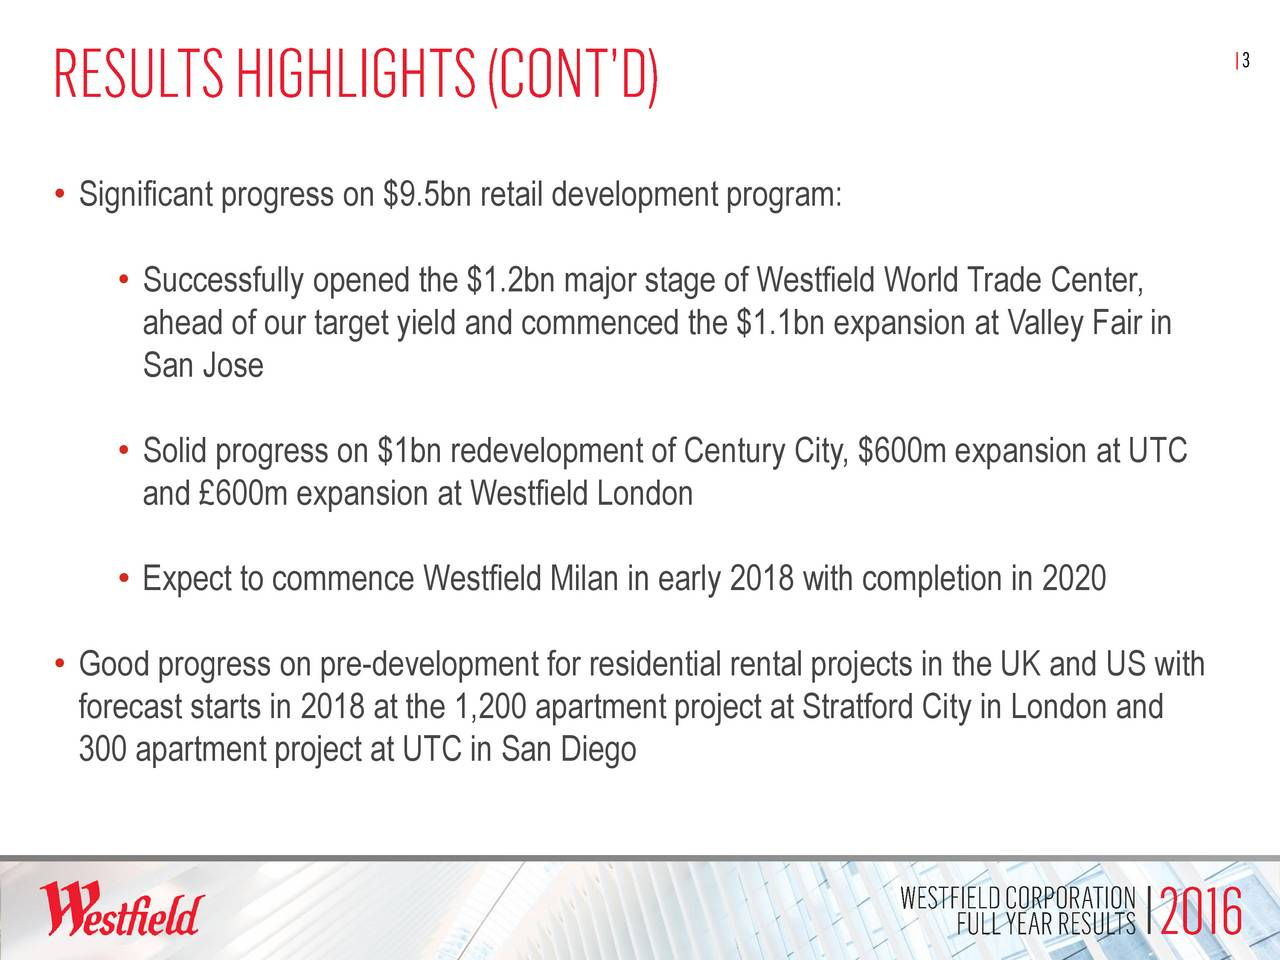 Successfully opened the $1.2bn major stage of Westfield World Trade Center, ahead of our target yield and commenced the $1.1bn expansion at Valley Fair in San Jose Solid progress on $1bn redevelopment of Century City, $600m expansion at UTC and 600m expansion at Westfield London Expect to commence Westfield Milan in early 2018 with completion in 2020 Good progress on pre-development for residential rental projects in the UK and US with forecast starts in 2018 at the 1,200 apartment project at Stratford City in London and 300 apartment project at UTC in San Diego